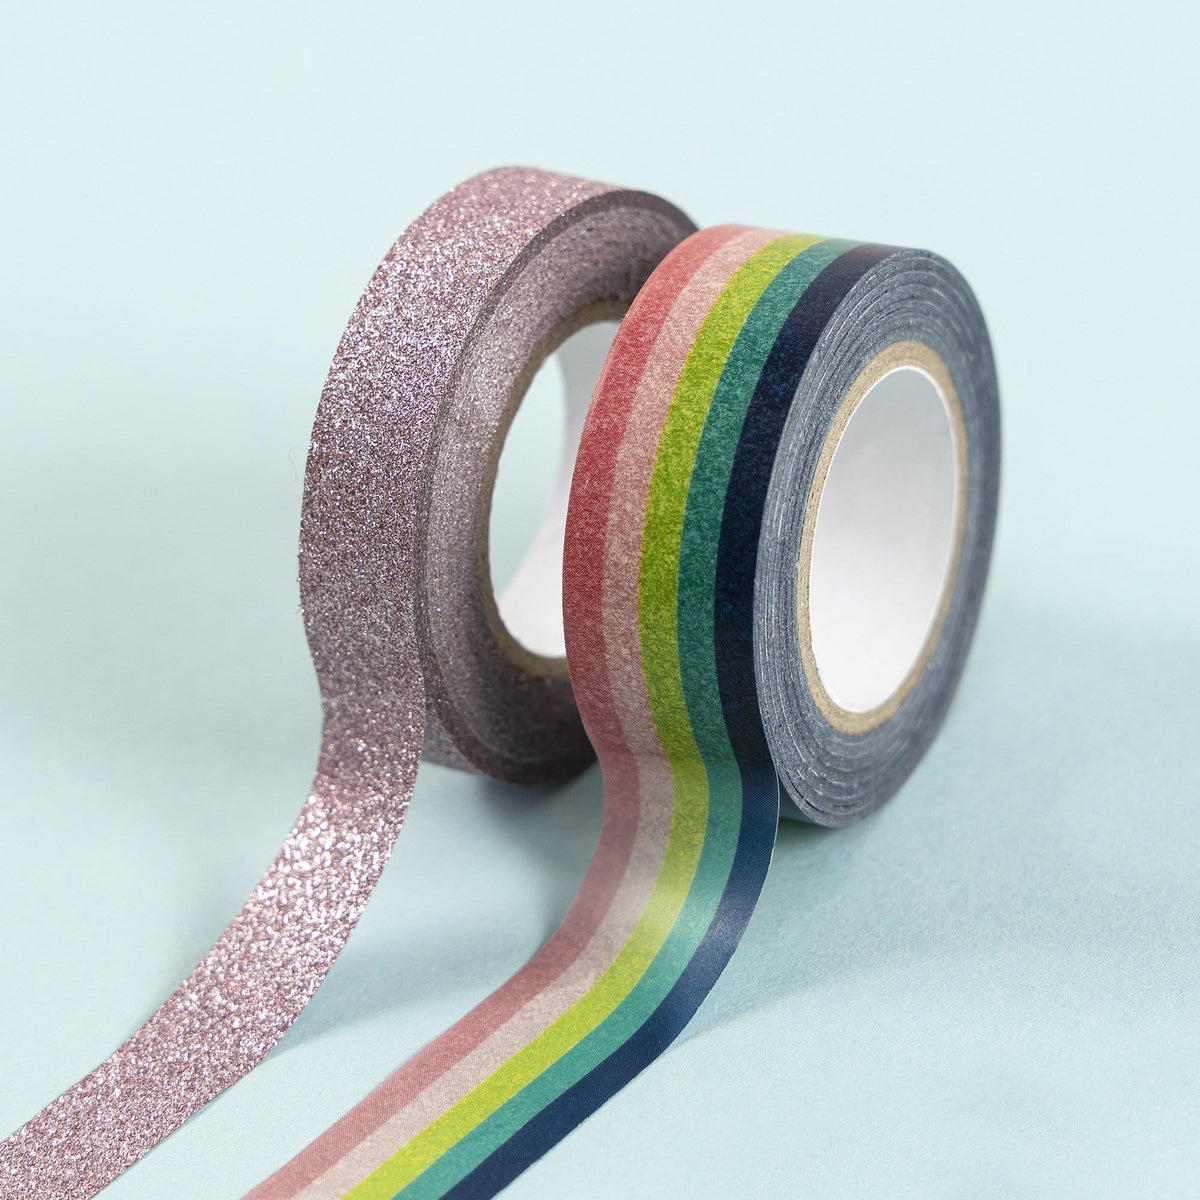 2 Pk Washi Tape - Rainbow and Glitter